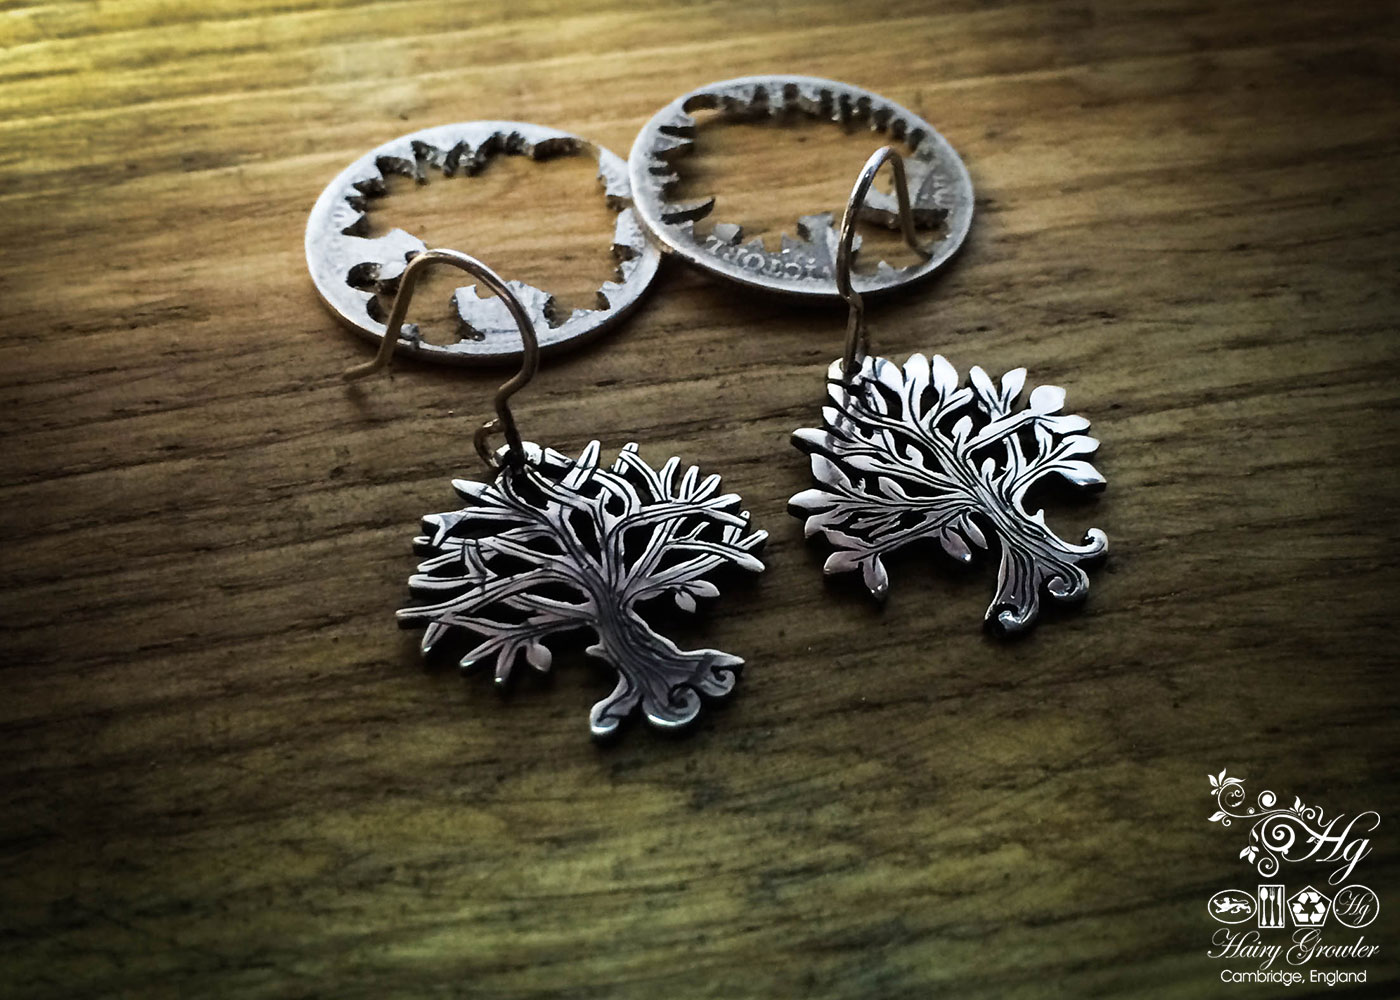 handmade and upcycled silver Georgian shilling tree of life earrings made in Cambridge